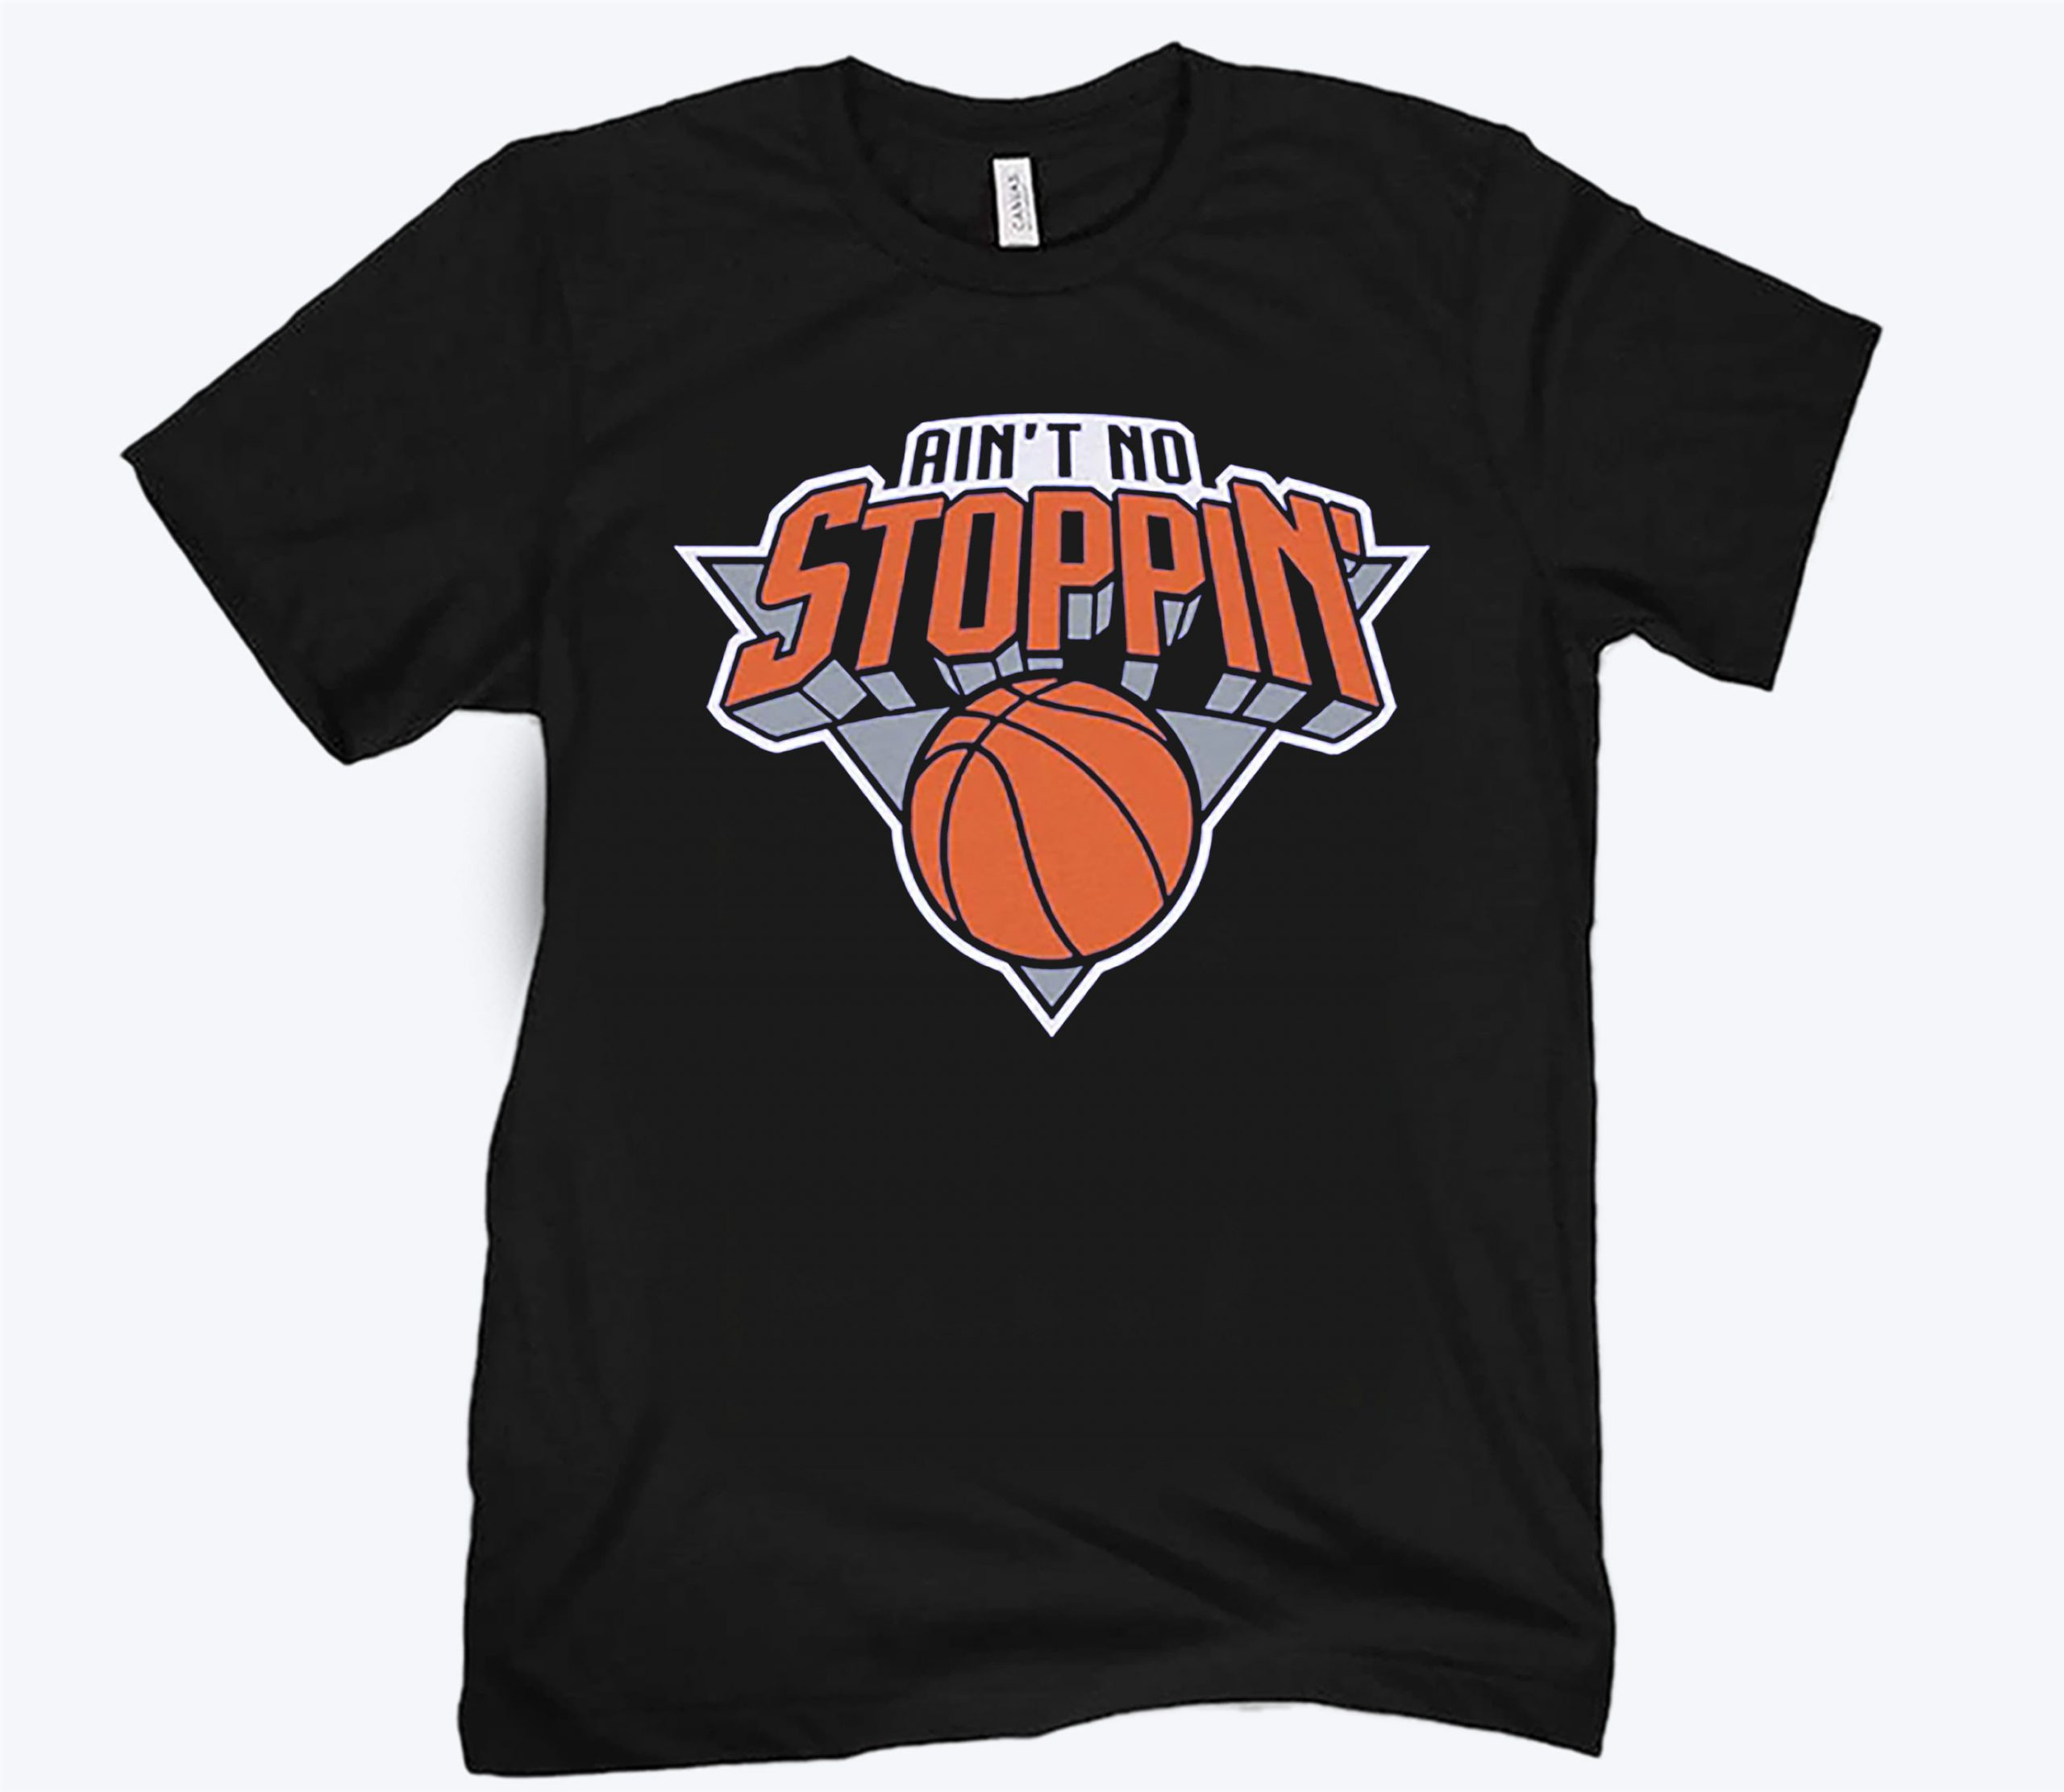 Ain't No Stoppin' New York Basketball T-Shirt